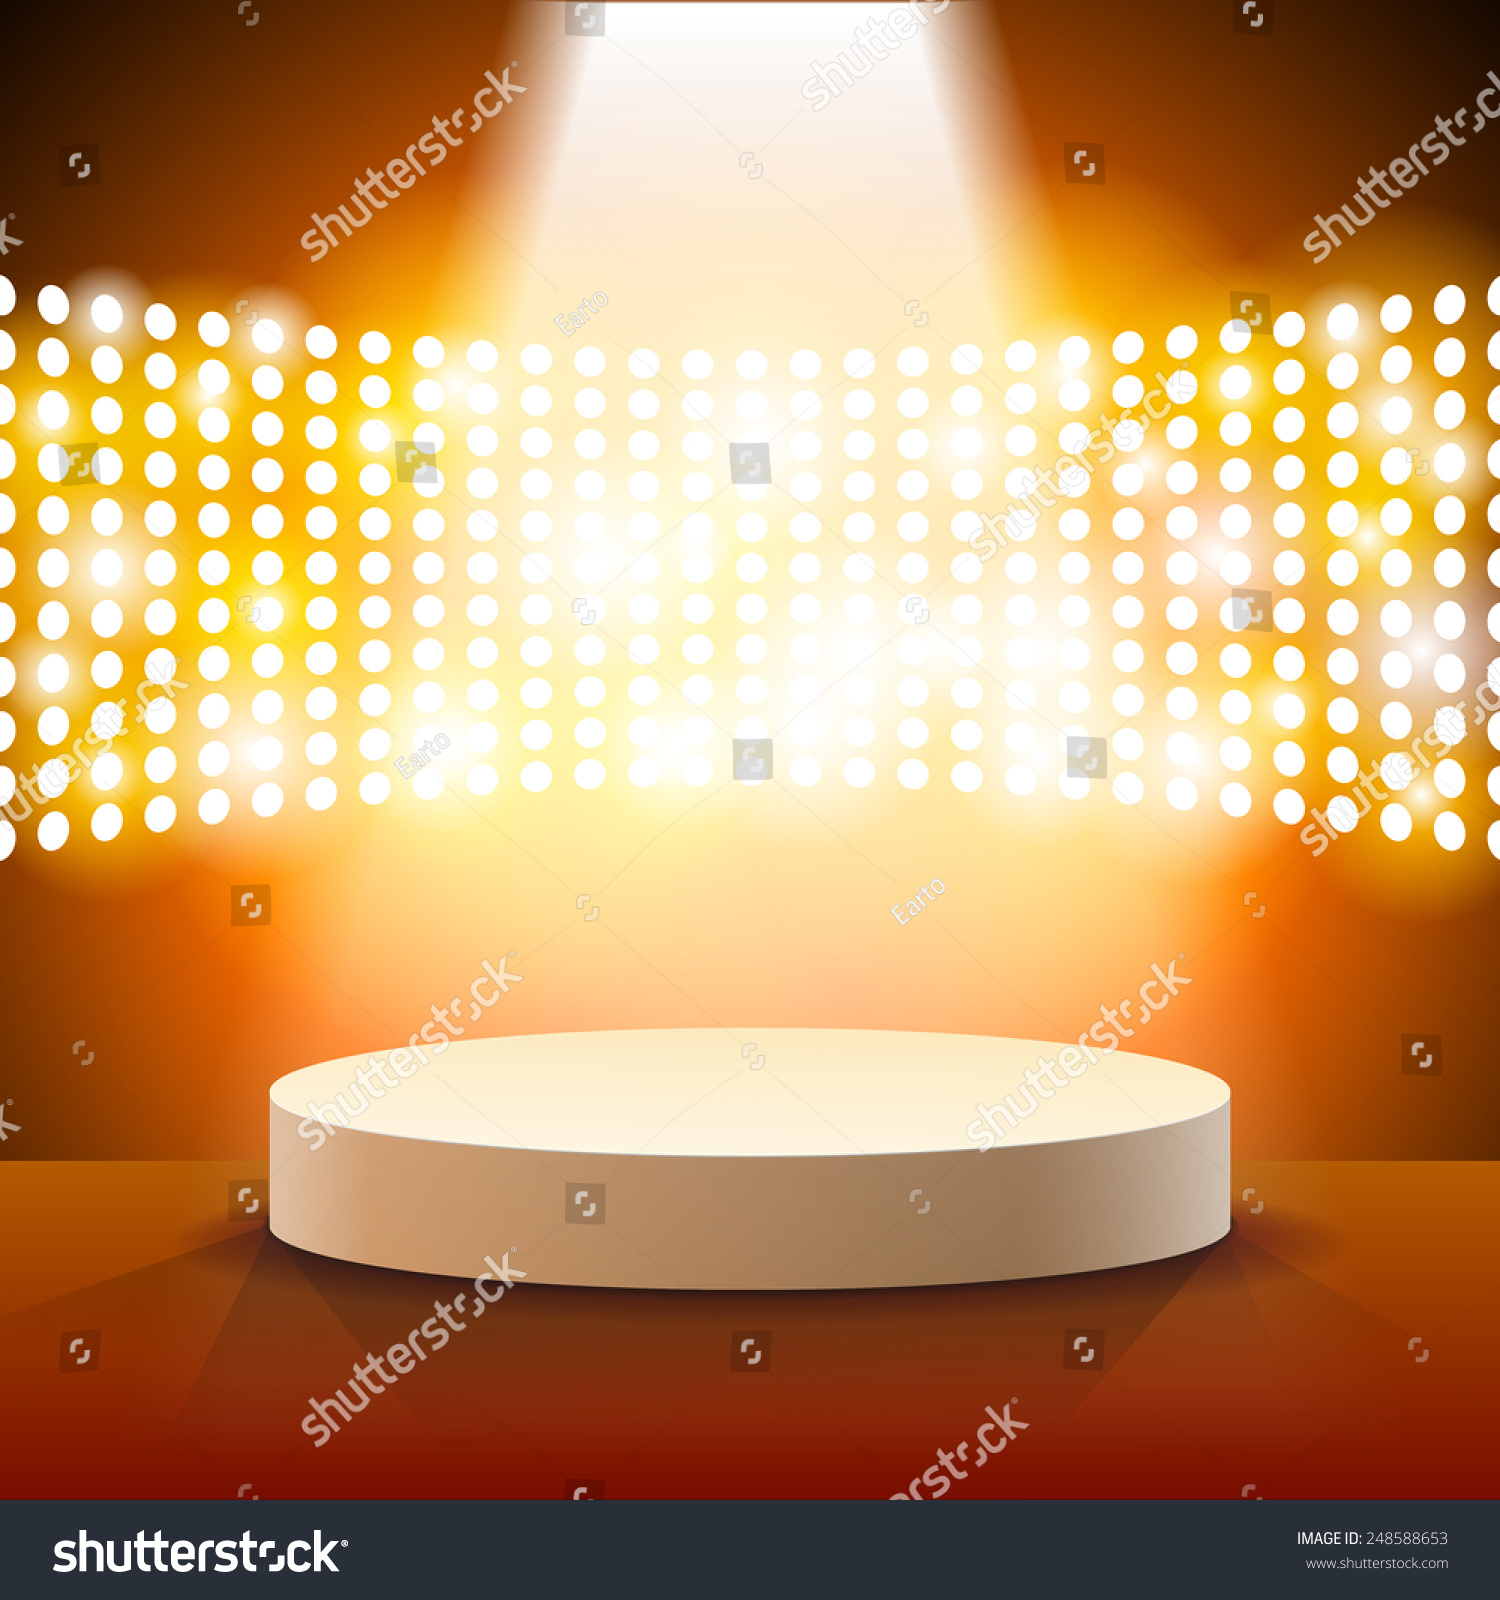 Theater Lights Background: Stage Lighting Background Spot Light Effects Stock Vector